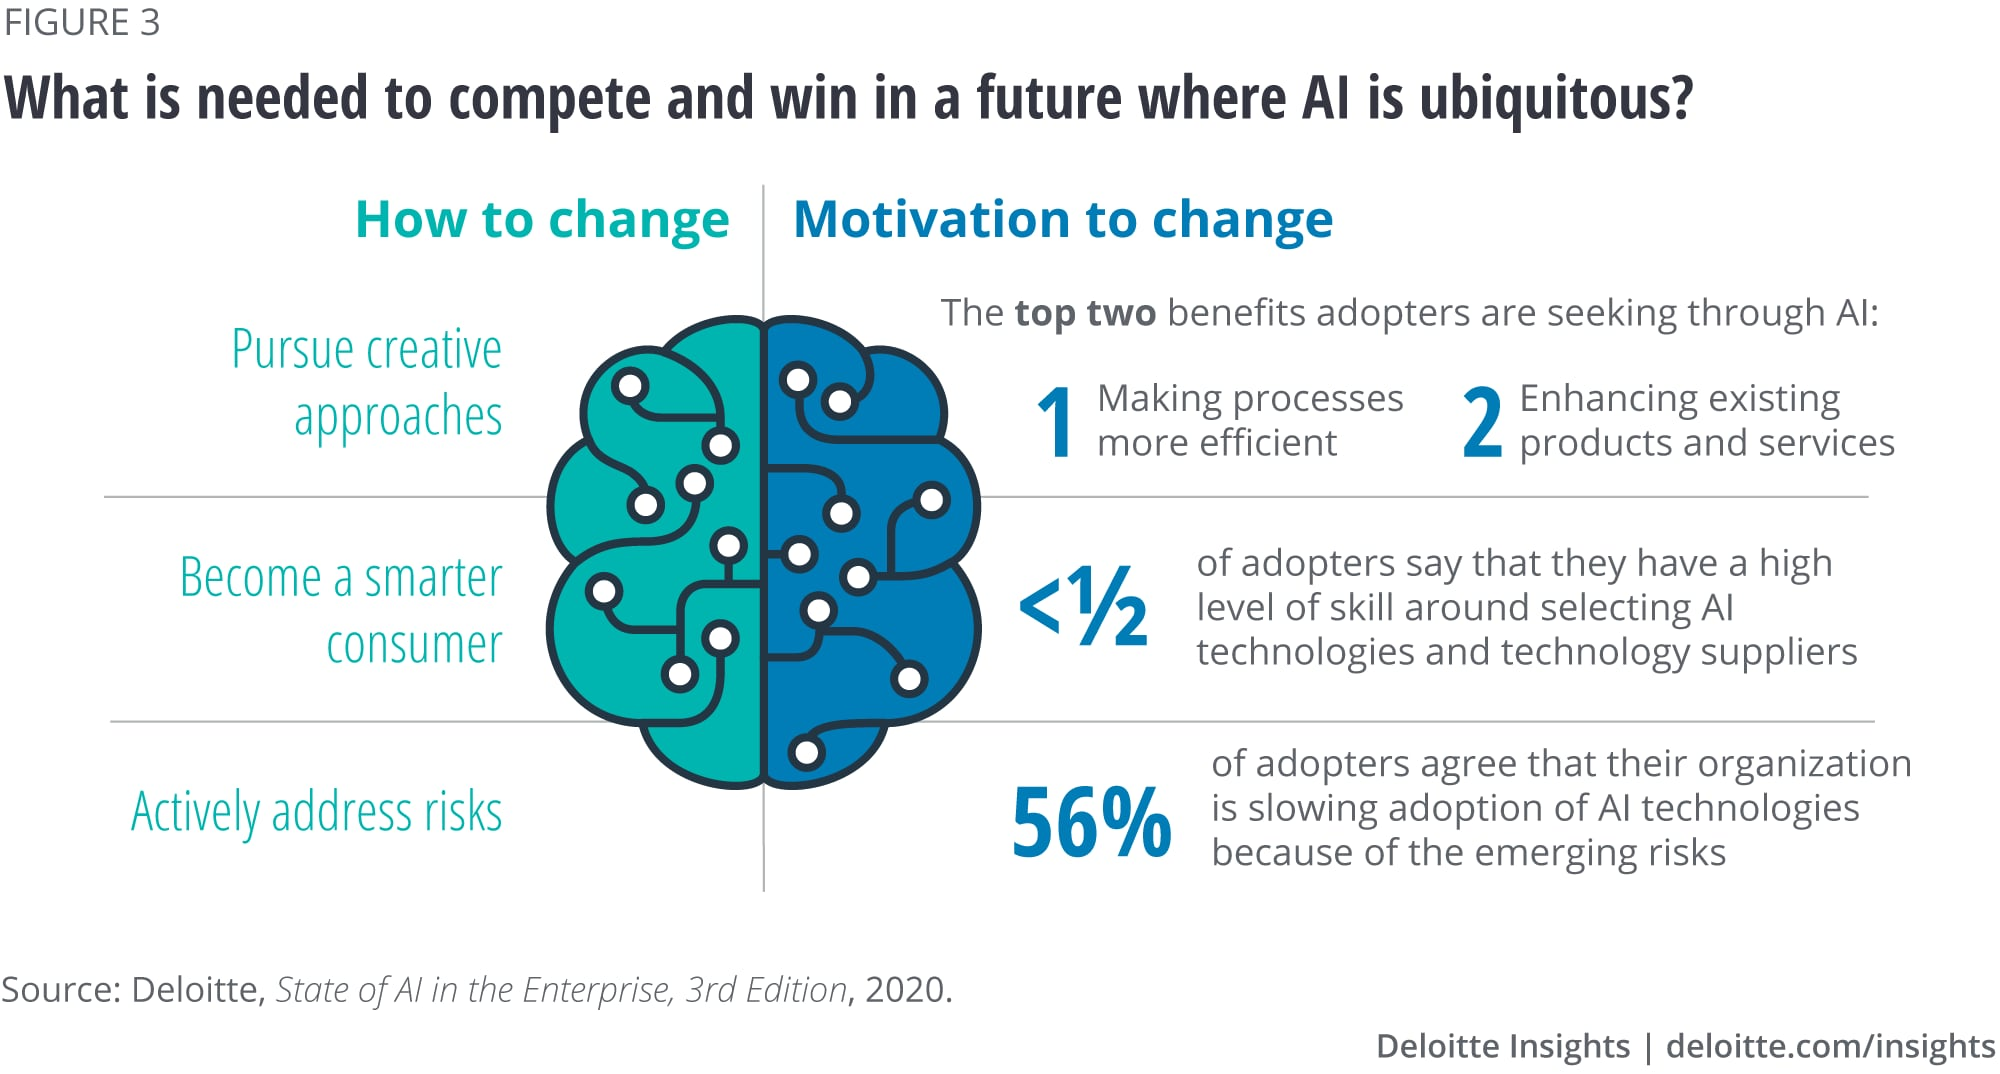 What is needed to compete and win in a future where AI is ubiquitous?